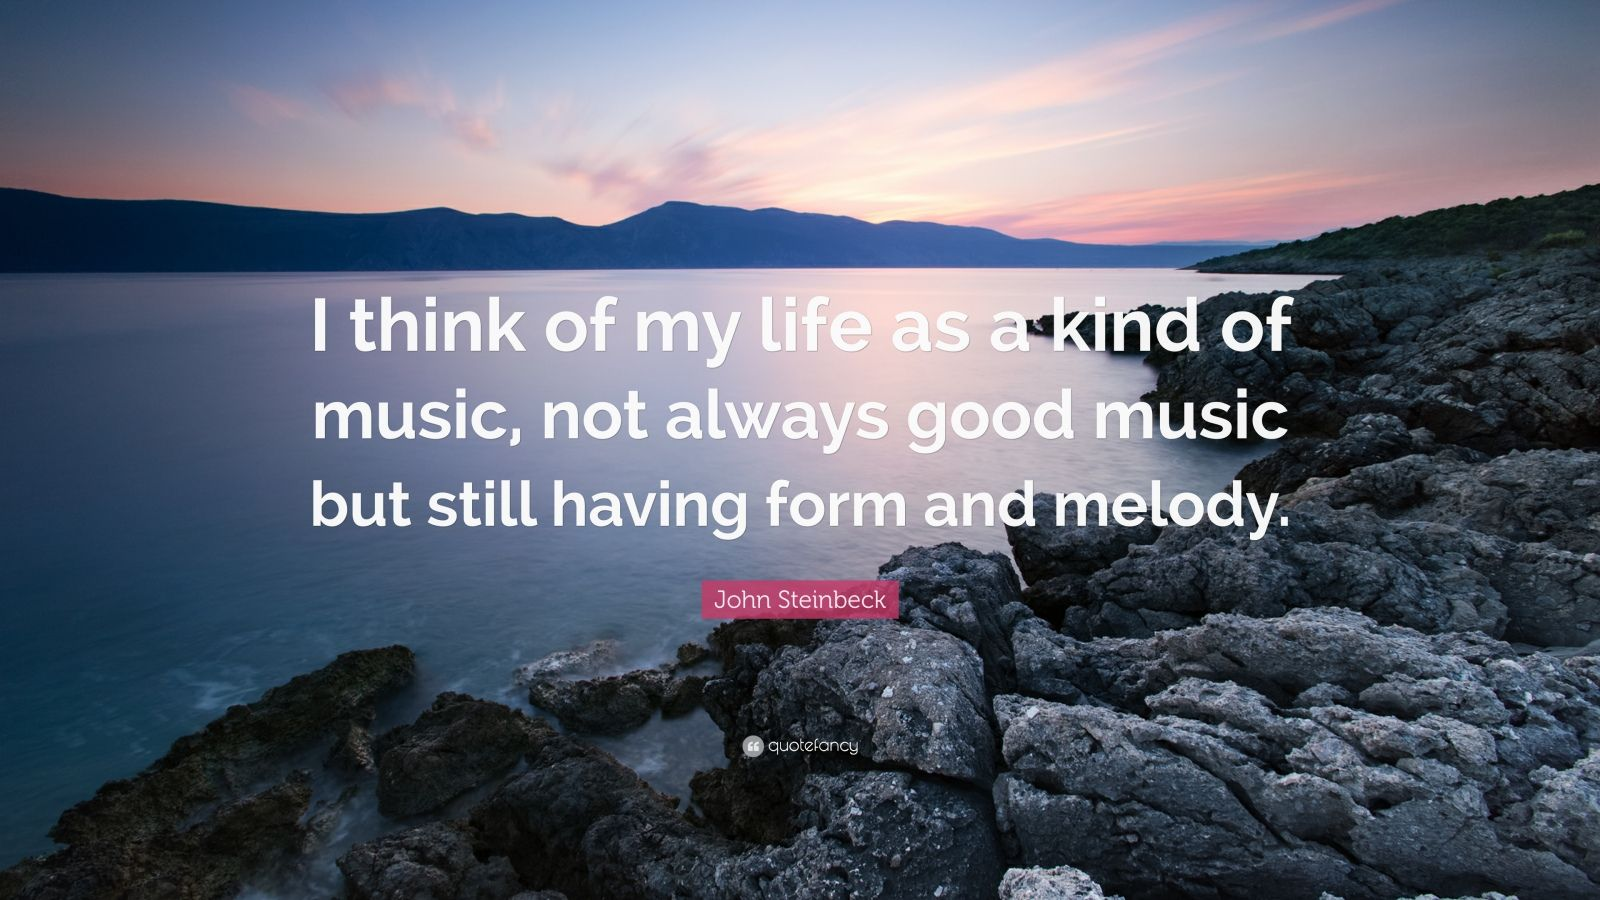 """John Steinbeck Quote: """"I think of my life as a kind of music, not always good music but still having form and melody."""""""